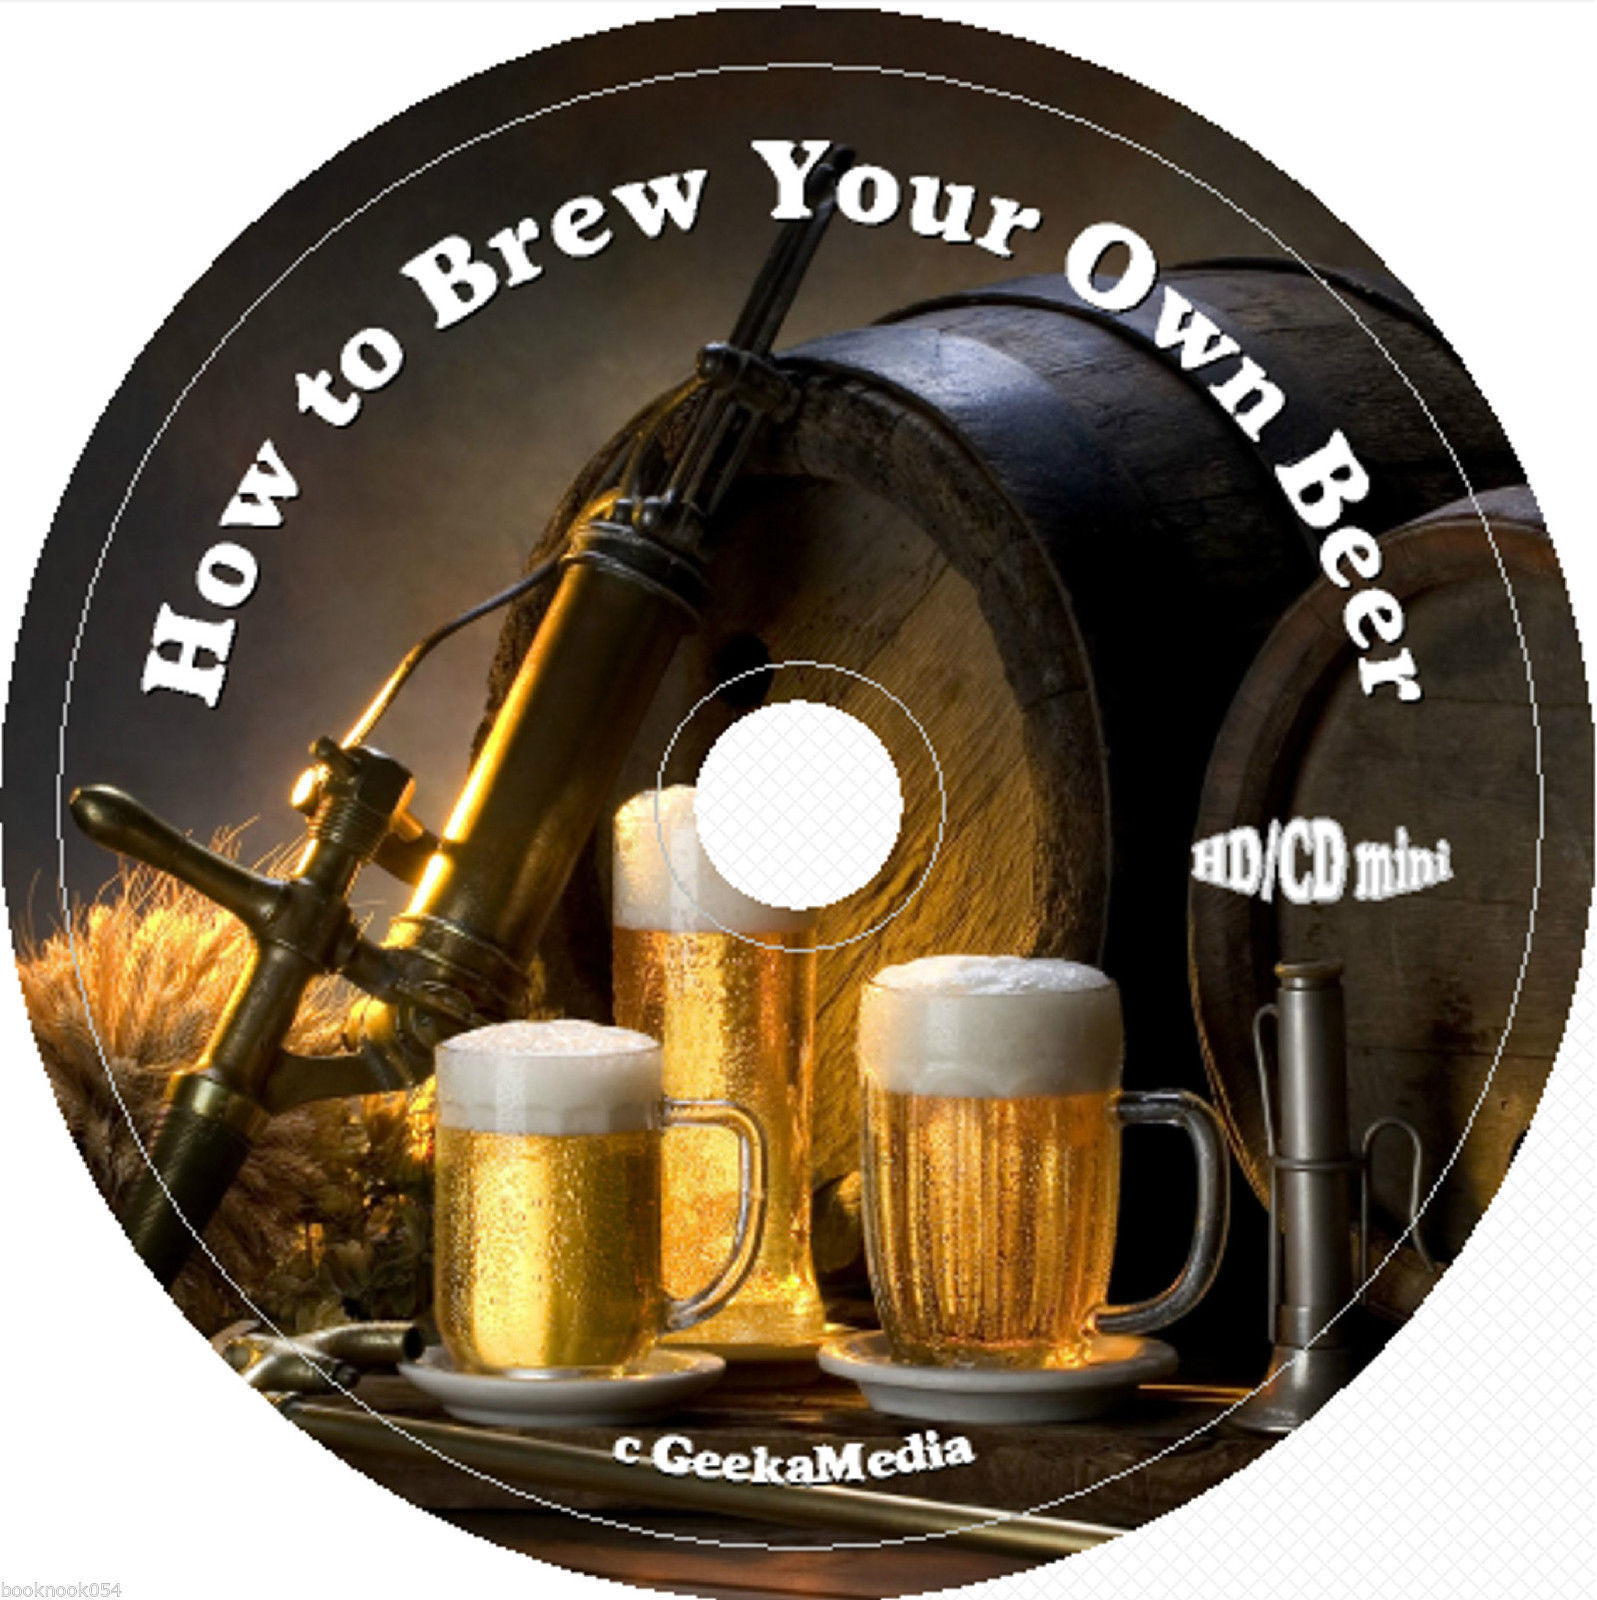 $9.49 - How to Brew Your Own Beer cd Books Recipes Cookbook Making Make Vintage Home